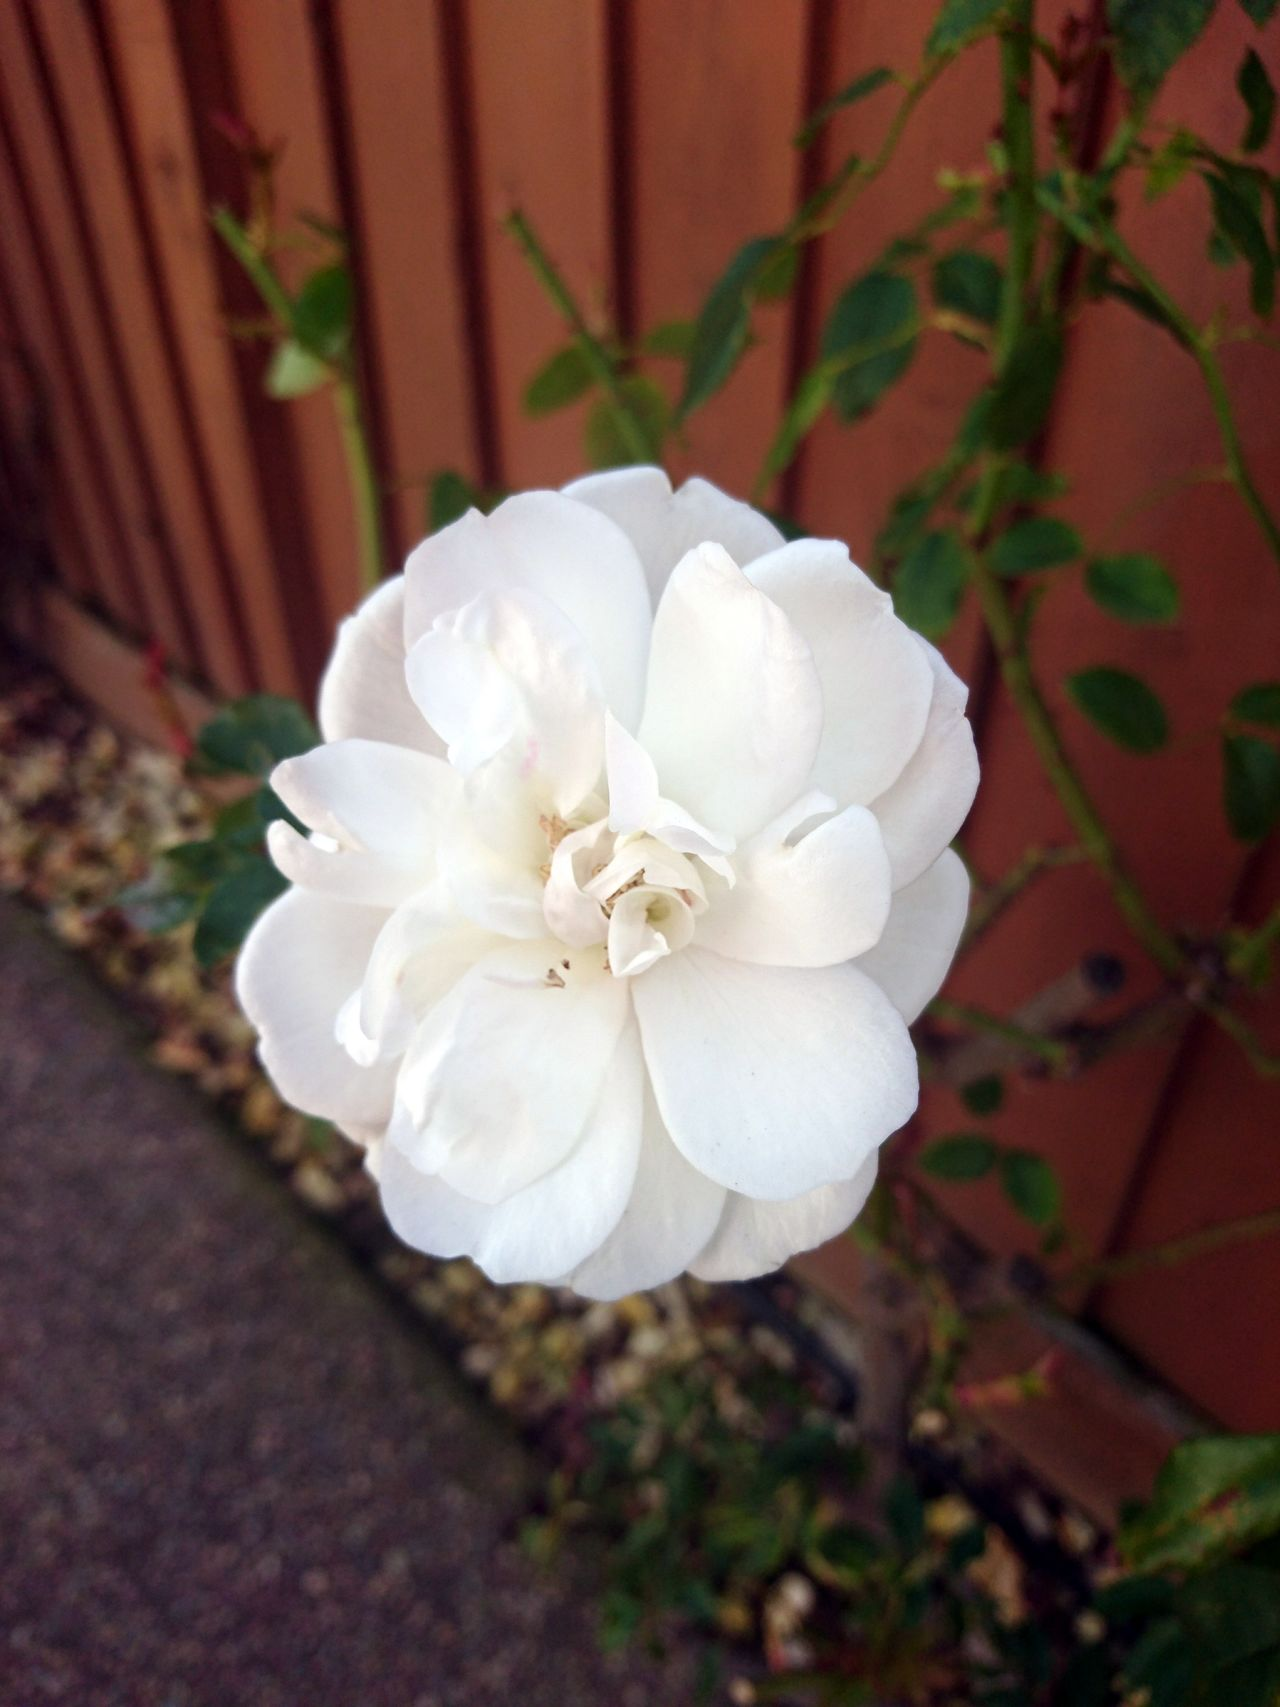 Flower Nature No People Close-up Flower Head Rose♥ White Flower Winter Beauty In Nature Outdoors Fragility Freshness Day